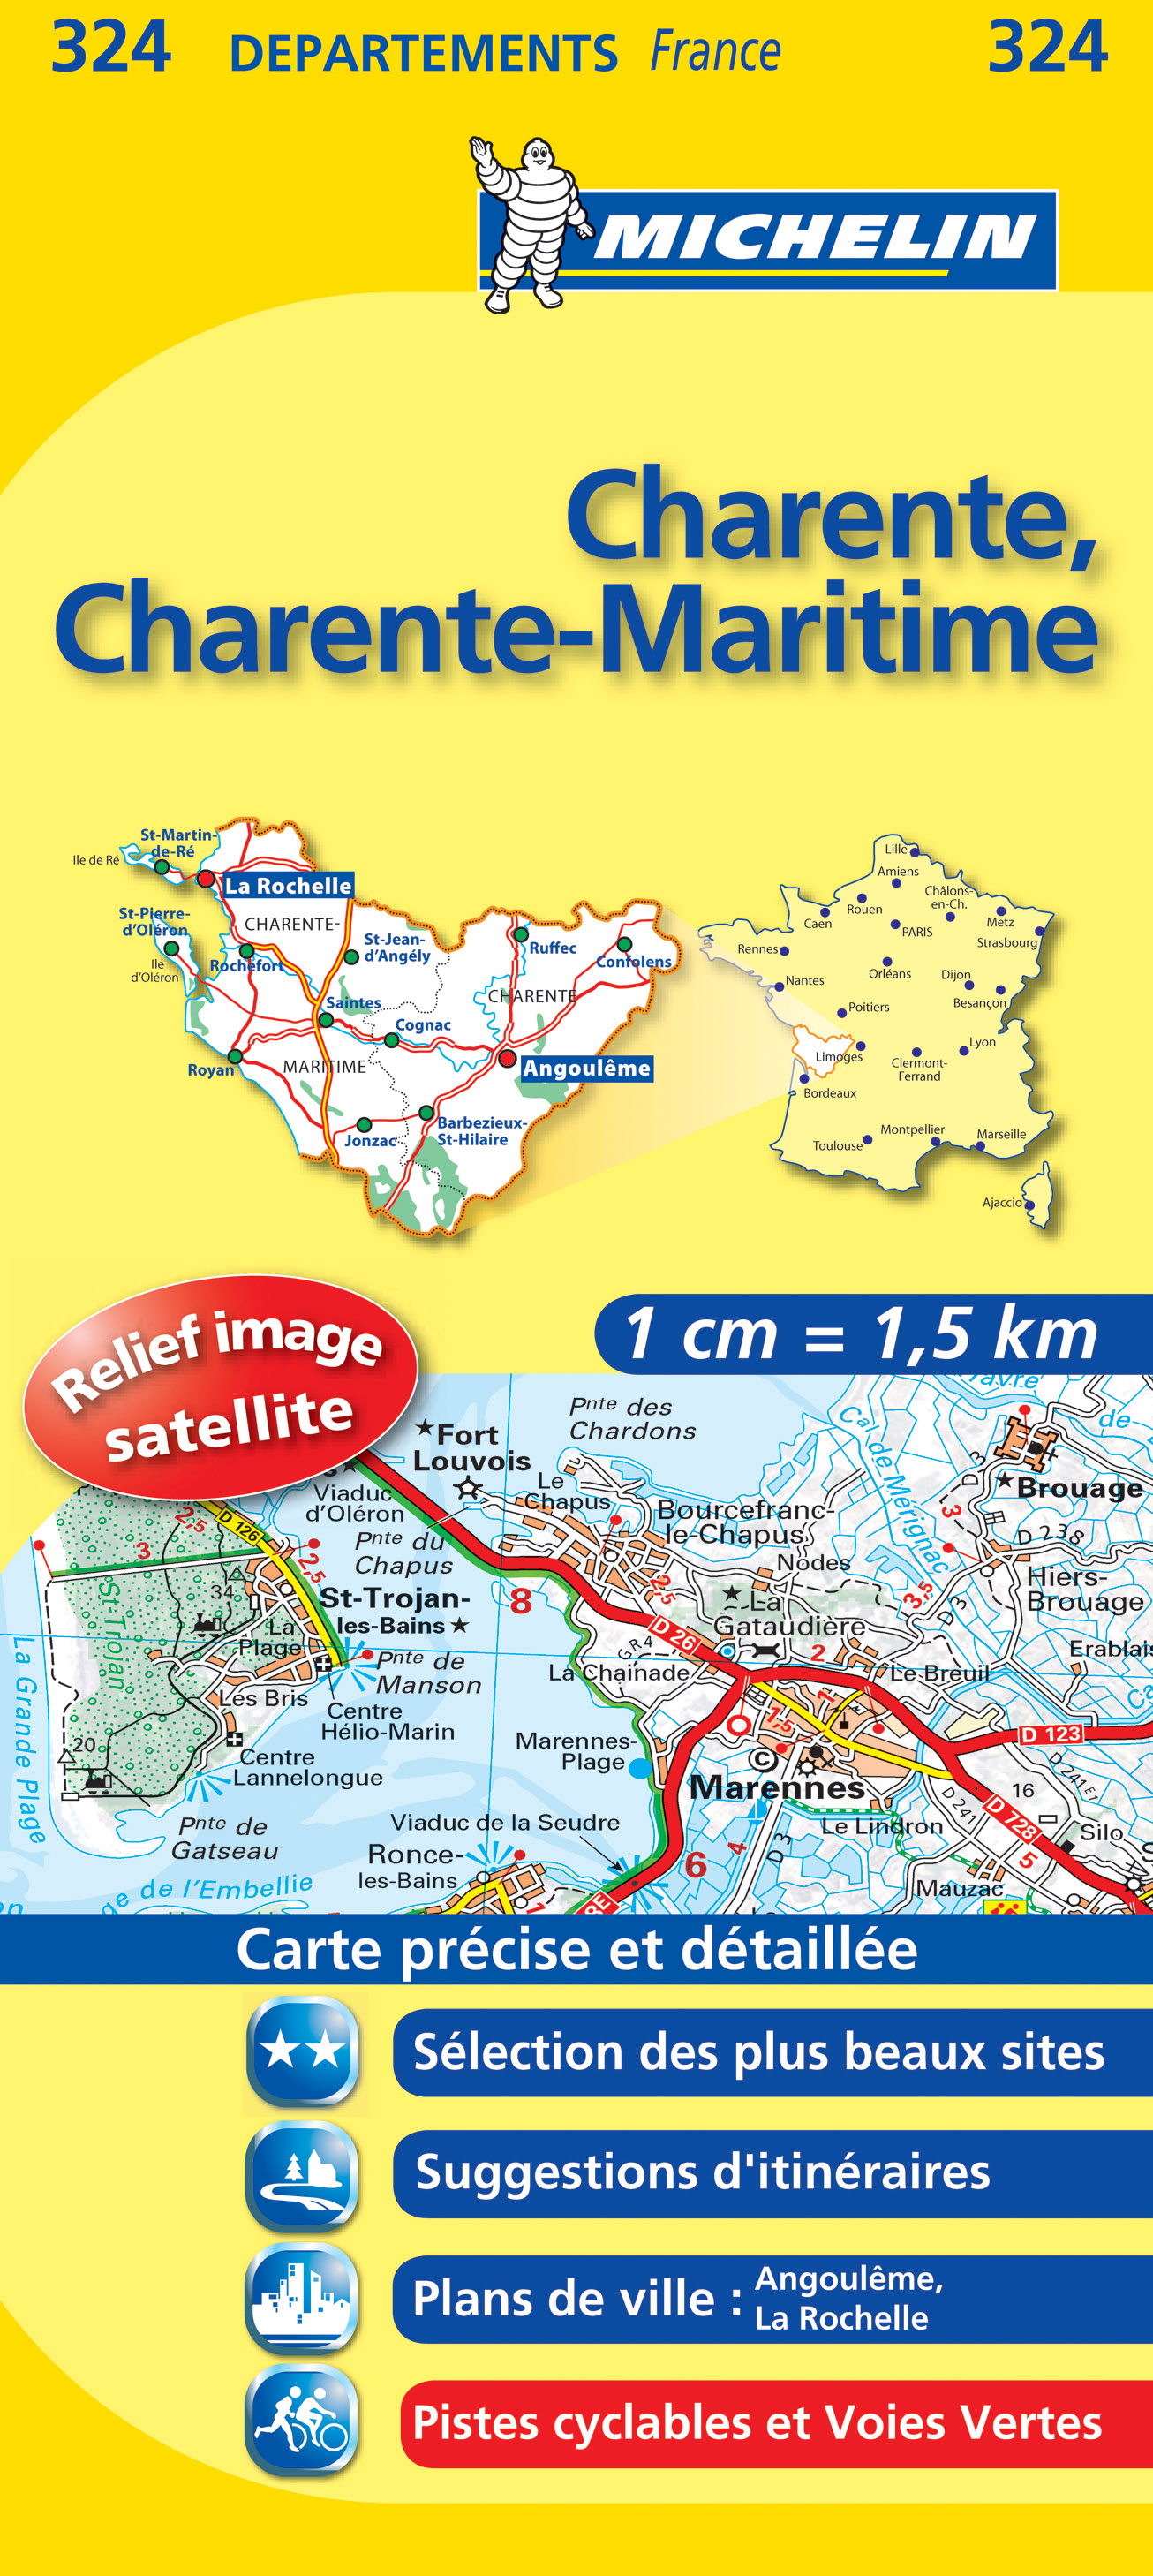 Charente, Charente-Maritime (Francie), mapa 1:150 000, MICHELIN